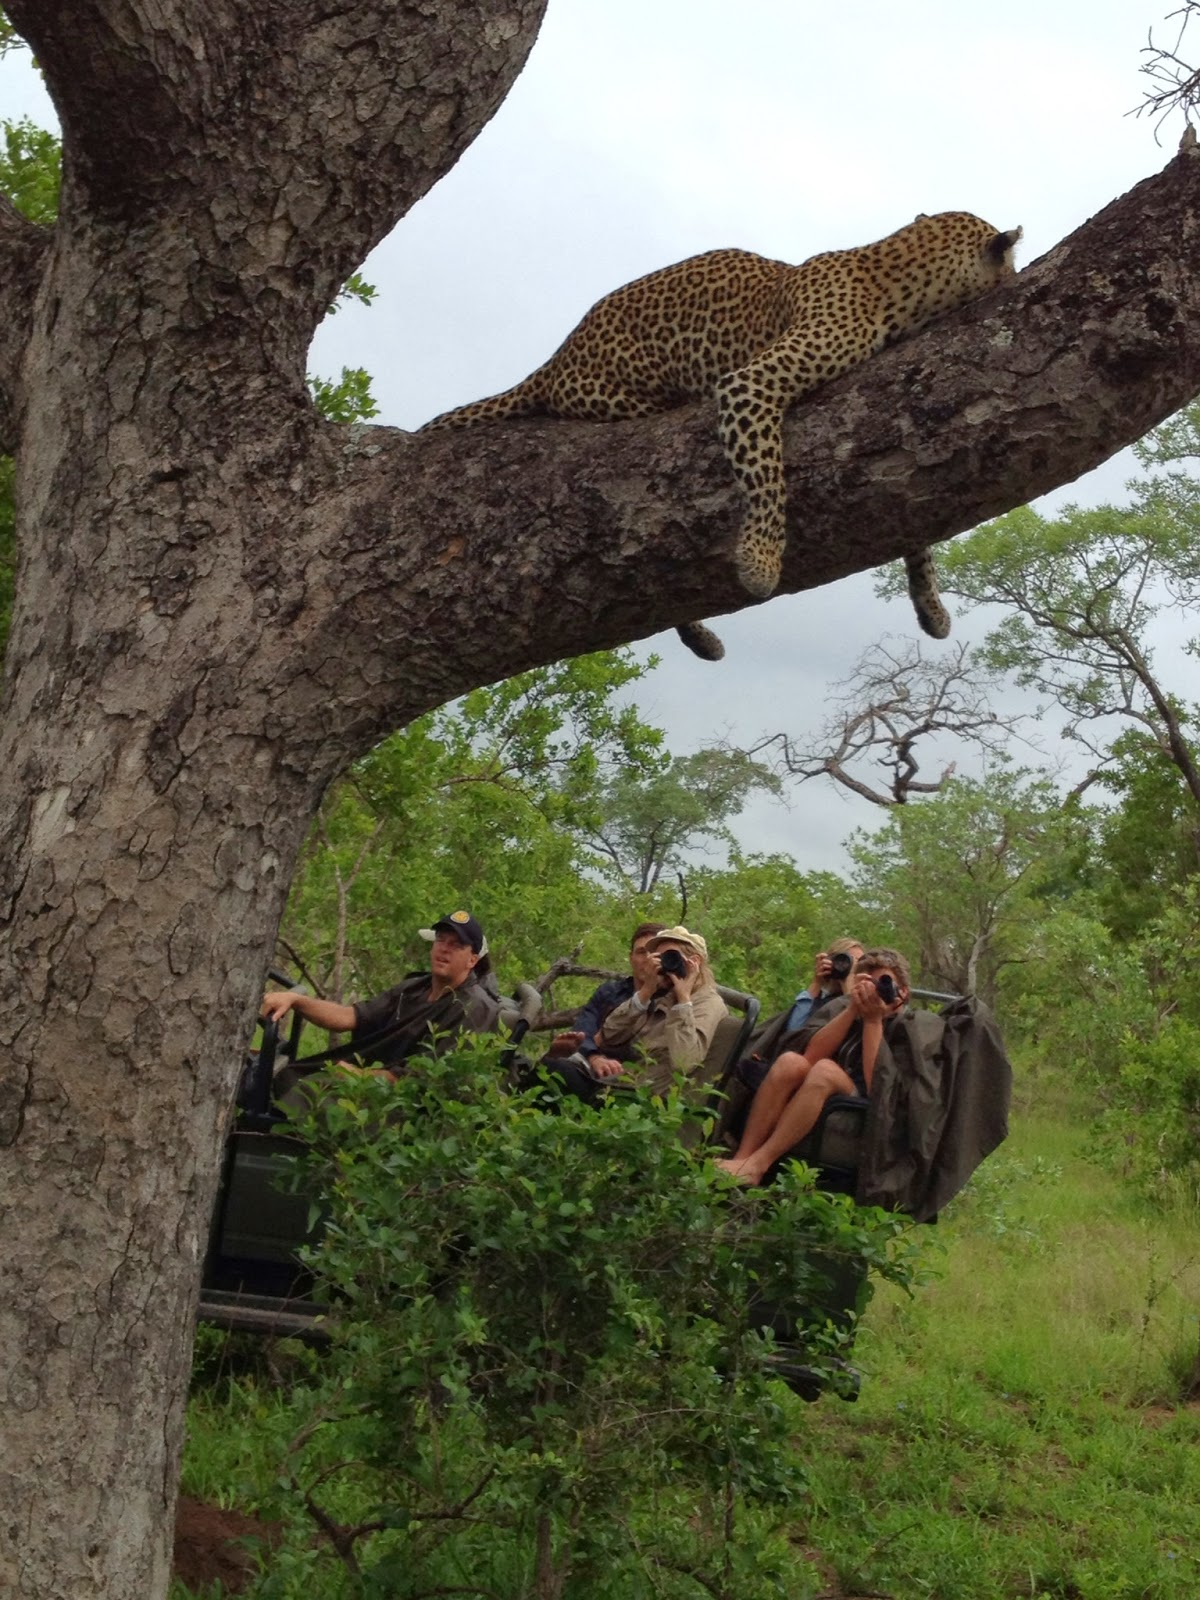 Sabi Sands - Another group joins us to watch the leopard